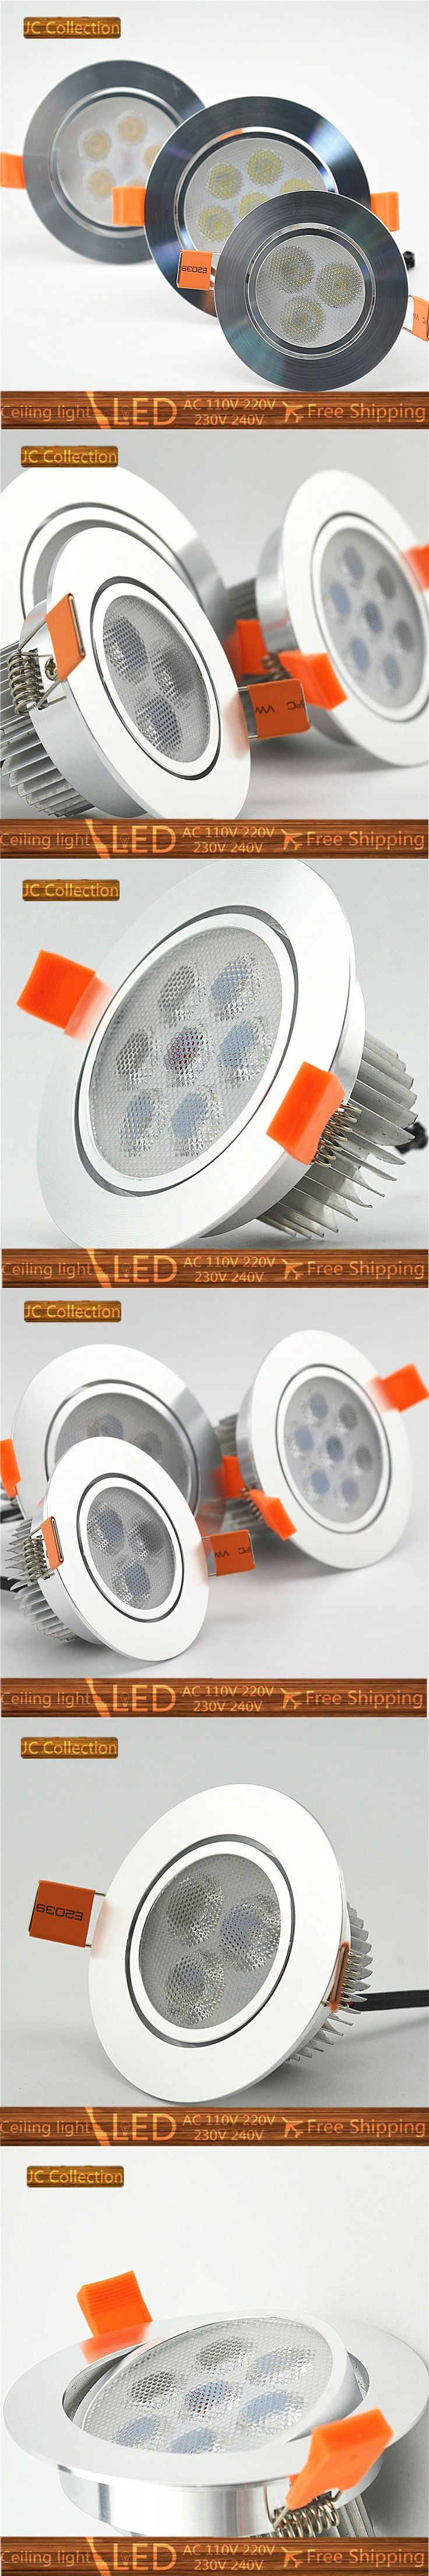 6X LED spotlight bulb lamp 3W 5W 7W Dimmable LED ceiling light Free Shipping Warm Cool White home decor aluminum dimmable dimmer $37.9